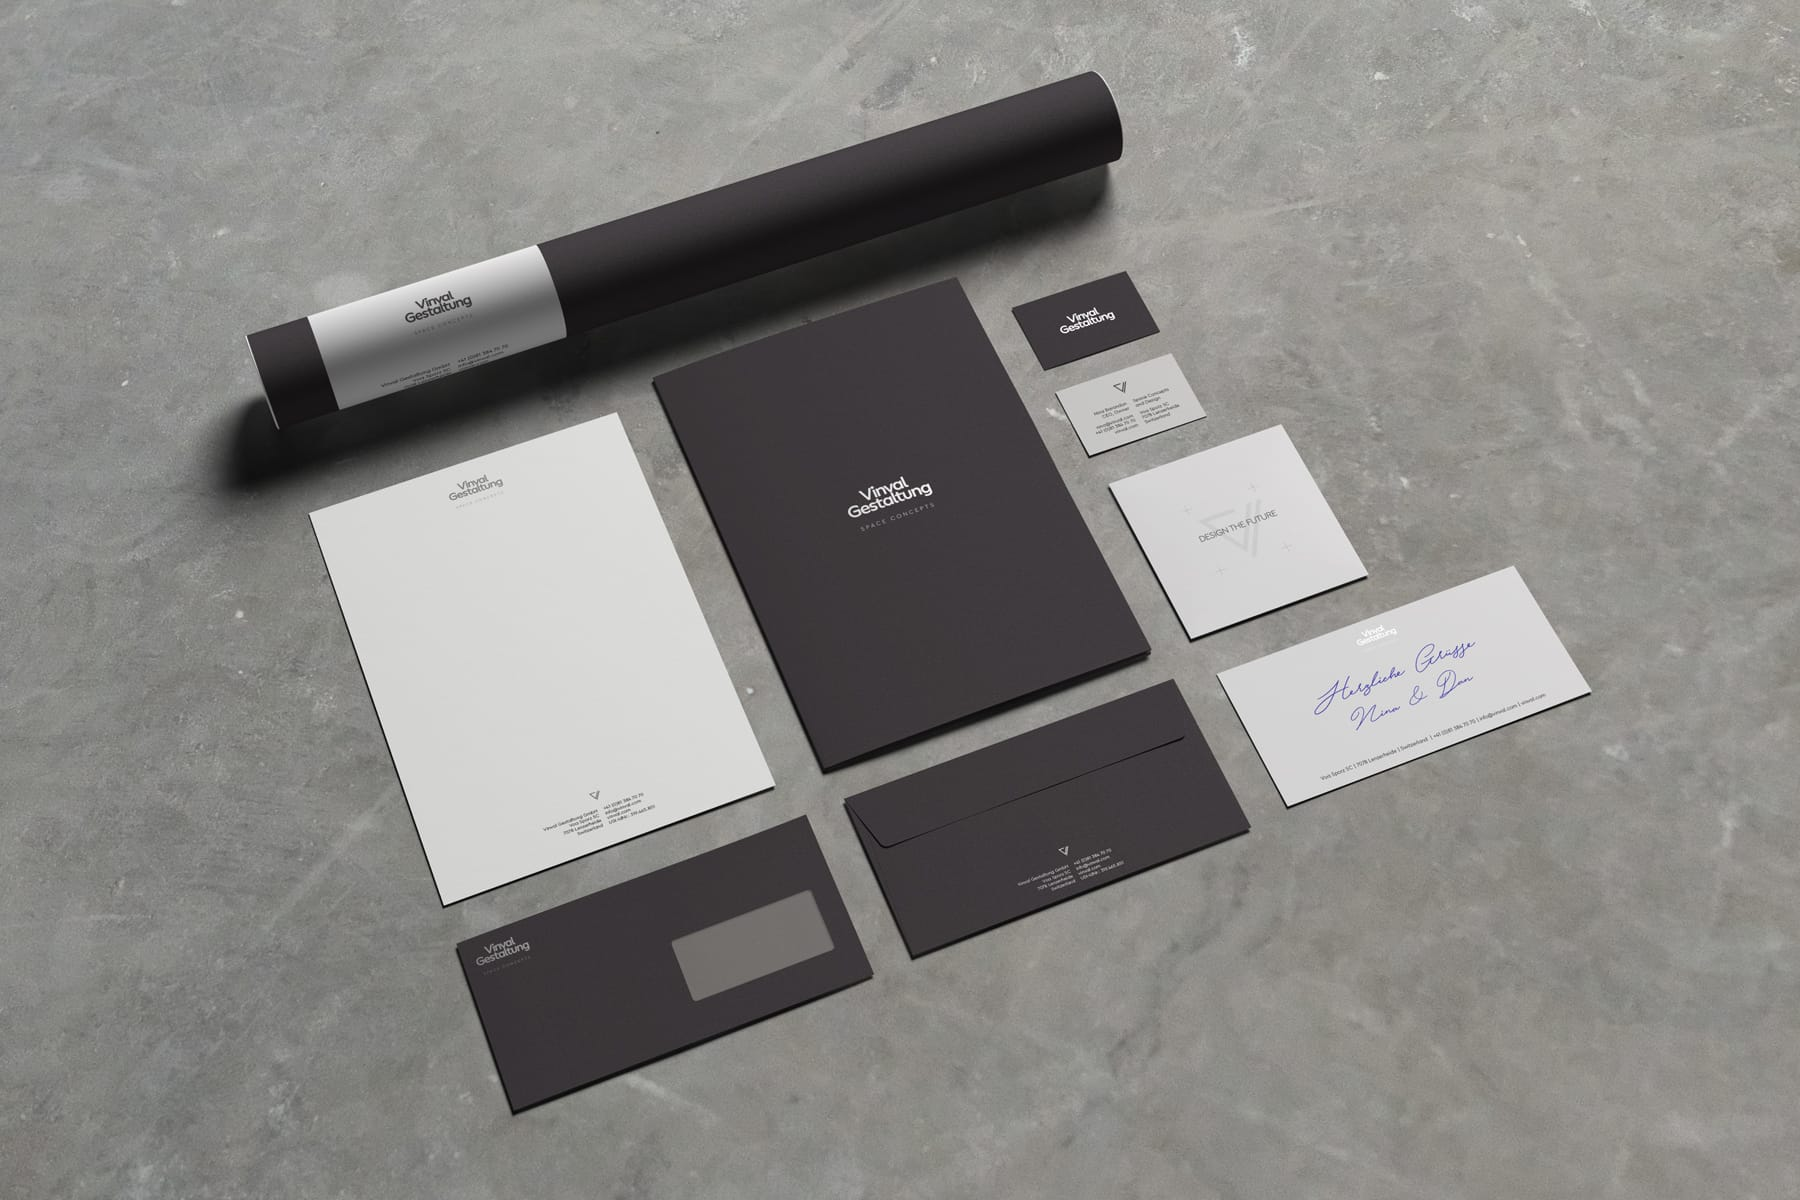 Vinvalg Gestaltung Corporate Identity Design by Firn Studio